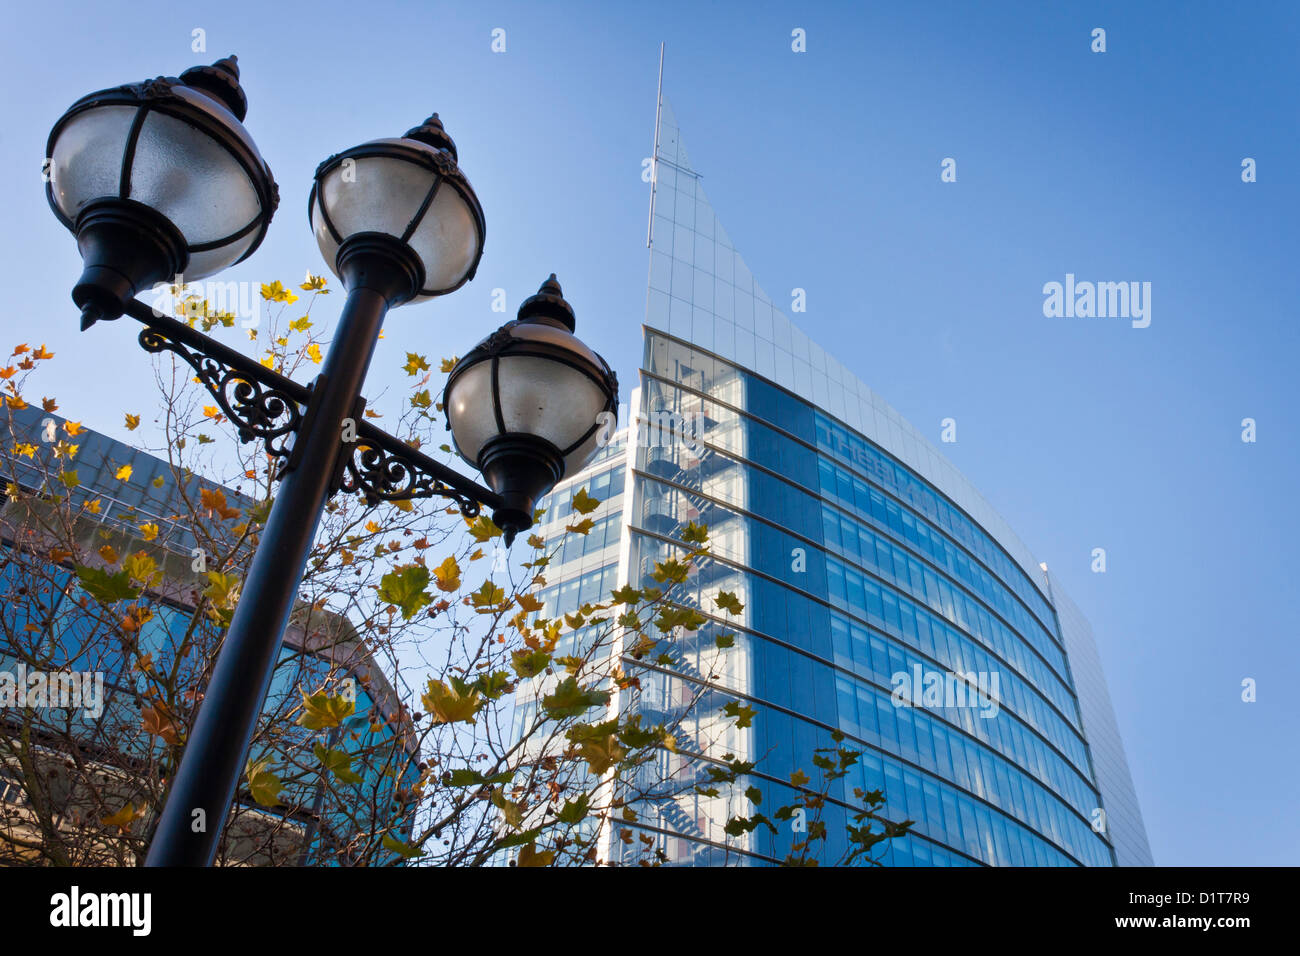 The Blade is the tallest building in Reading, Berkshire, England, GB, UK. - Stock Image